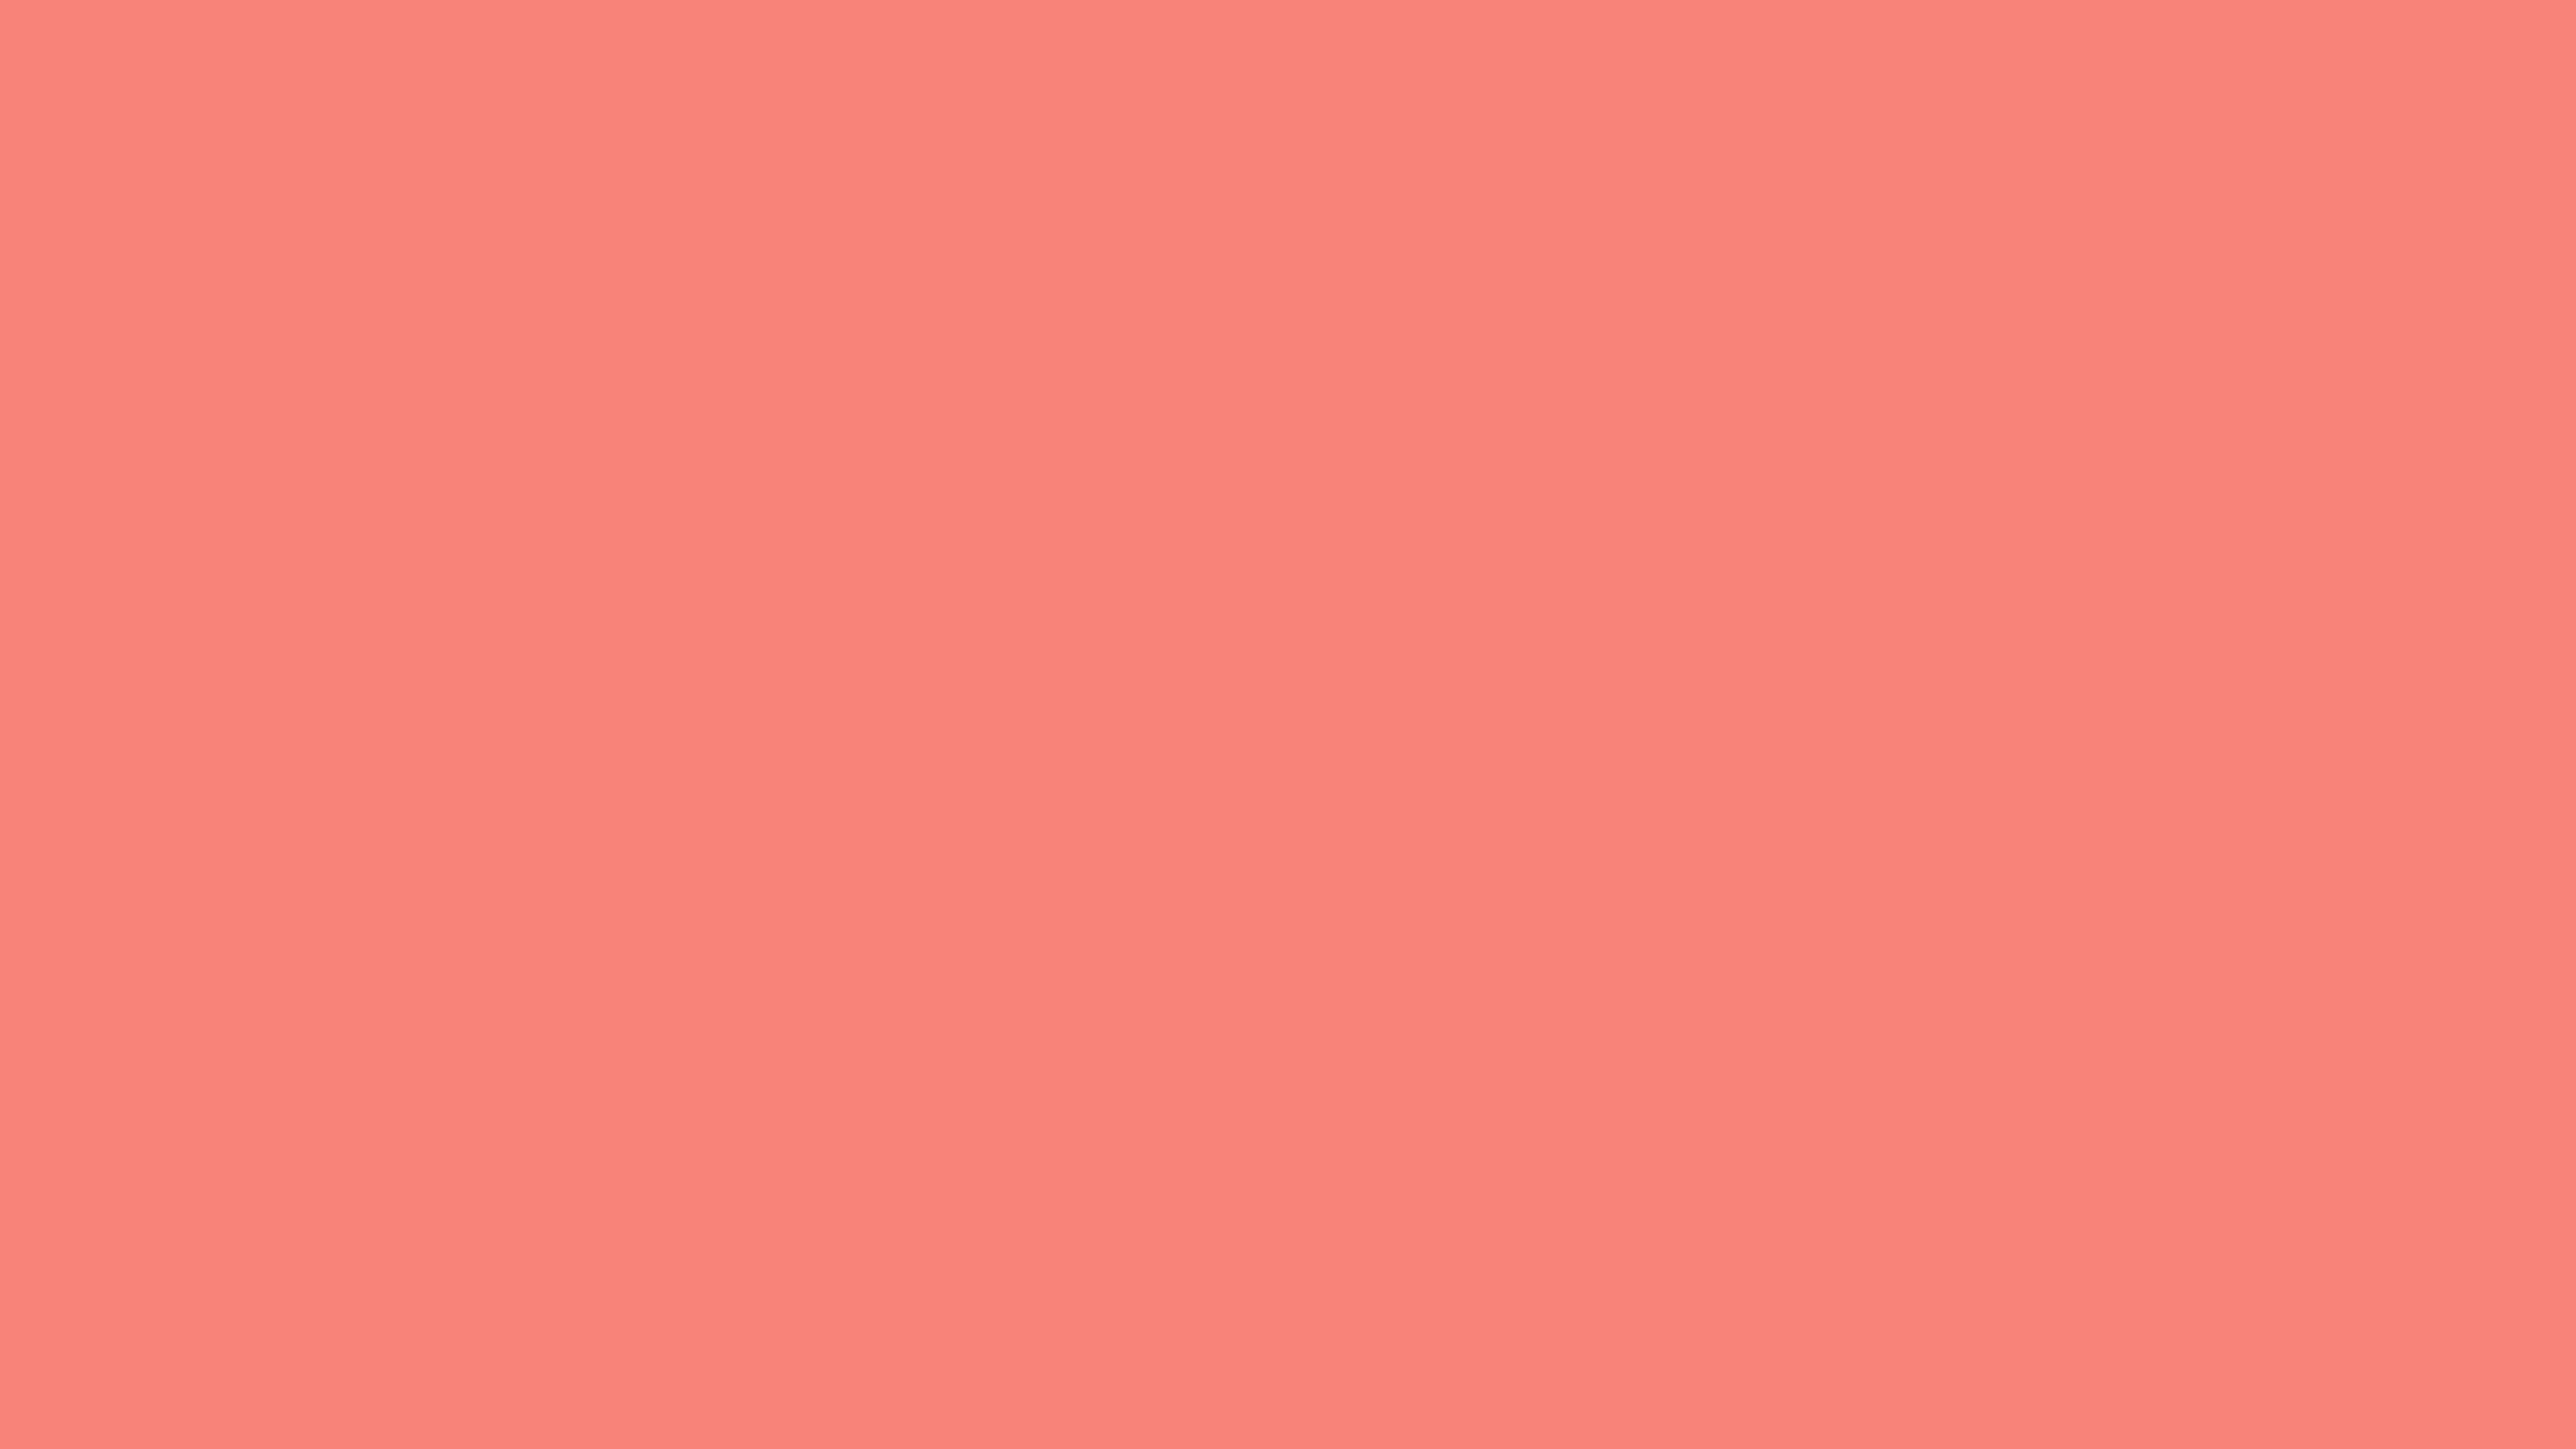 7680x4320 Congo Pink Solid Color Background